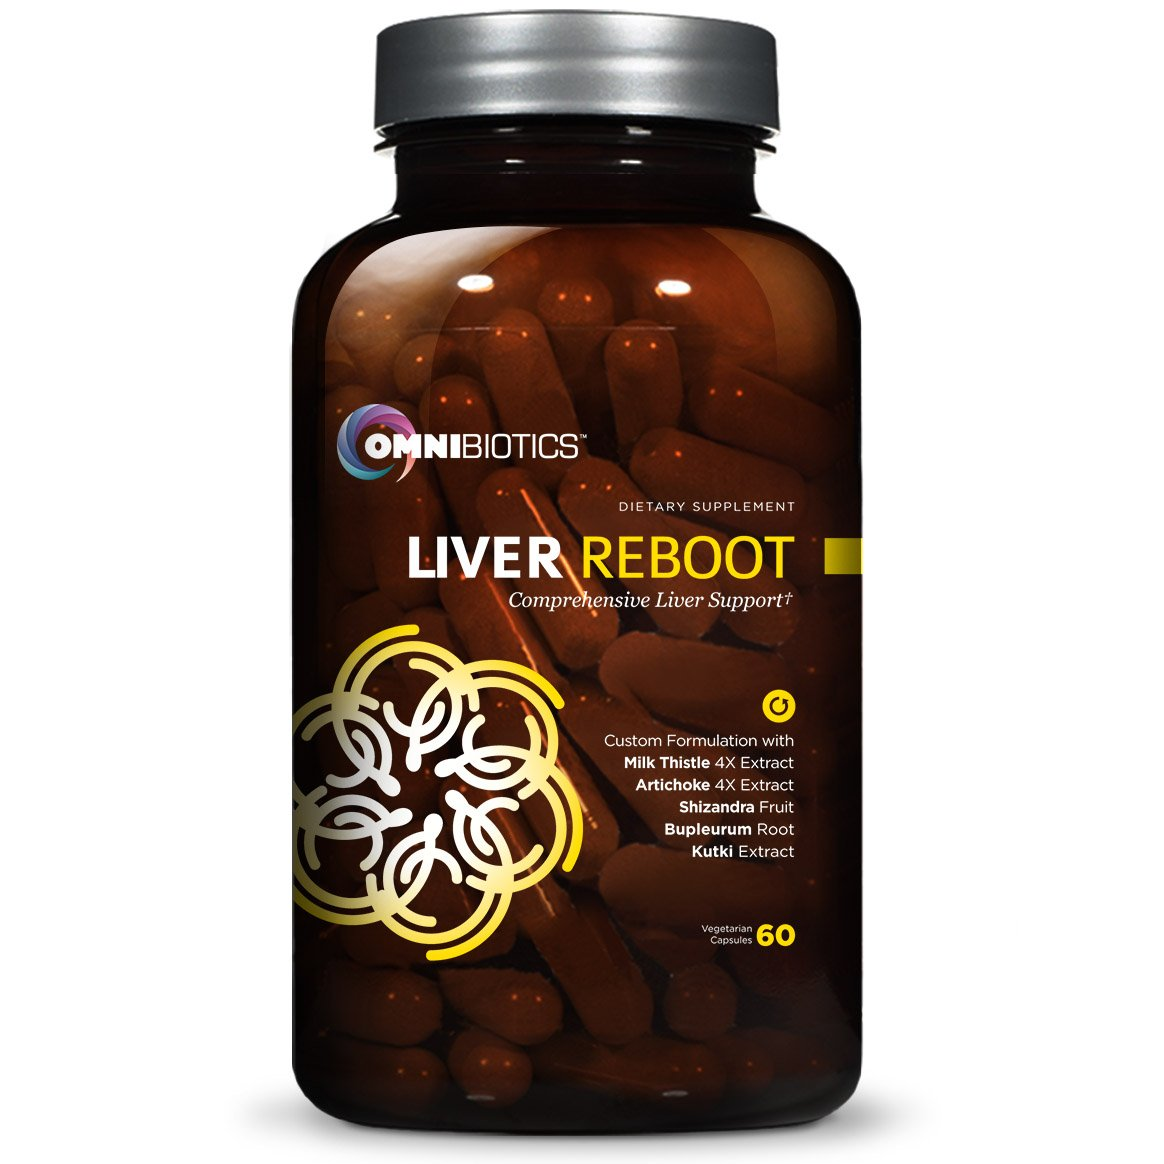 Liver Detox Supplement, Liver Cleanse Support | Milk Thistle Extract, Globe Artichoke, NAC, Bupleurum Root | 60 Vegan Capsules by OmniBiotics